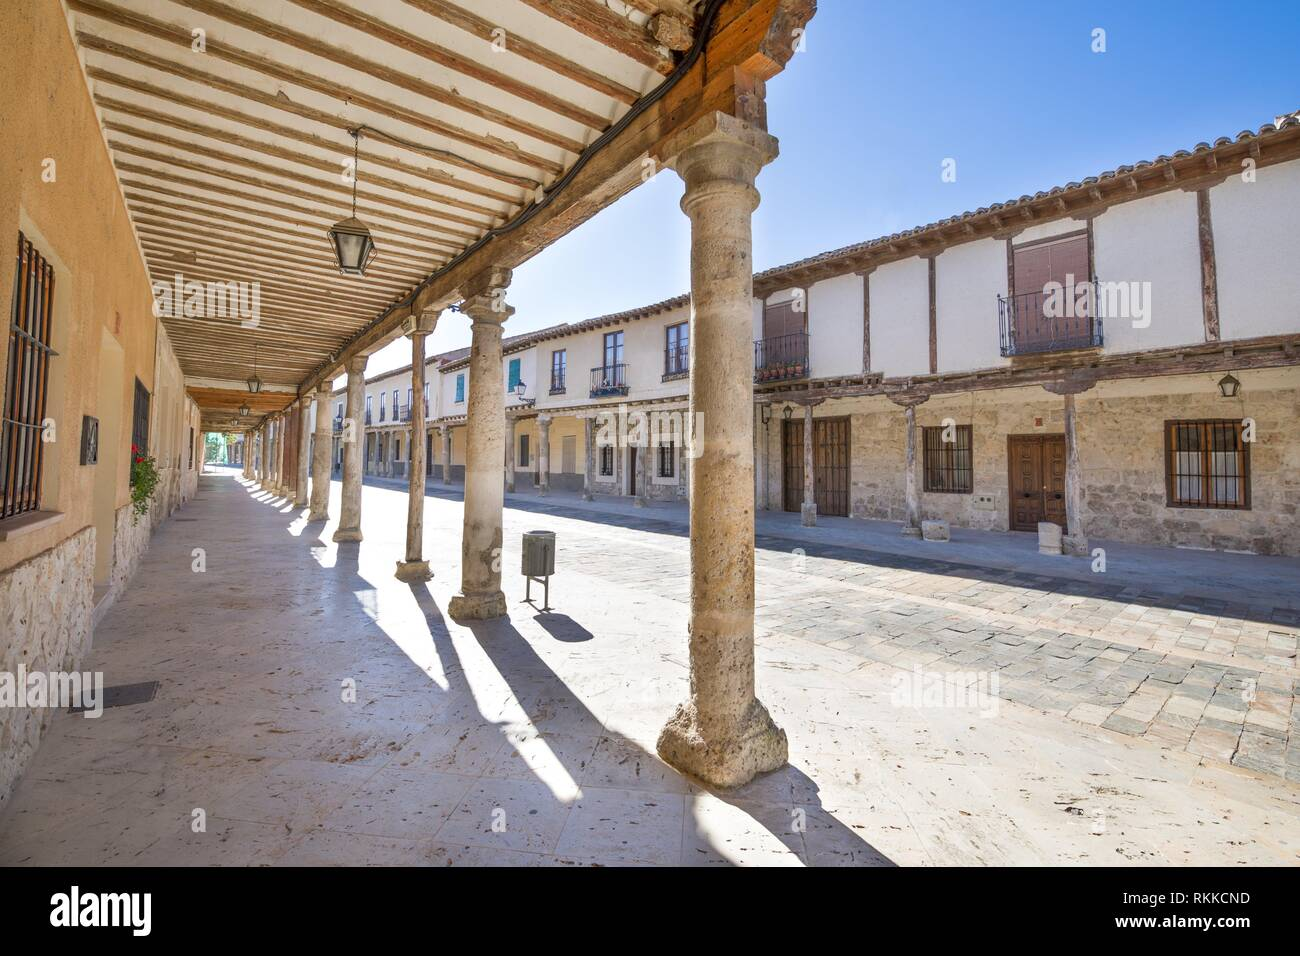 arcaded buildings, in medieval street, landmark and monument from seventeenth century, in Ampudia village, Palencia, Castile Leon, Spain, Europe. - Stock Image